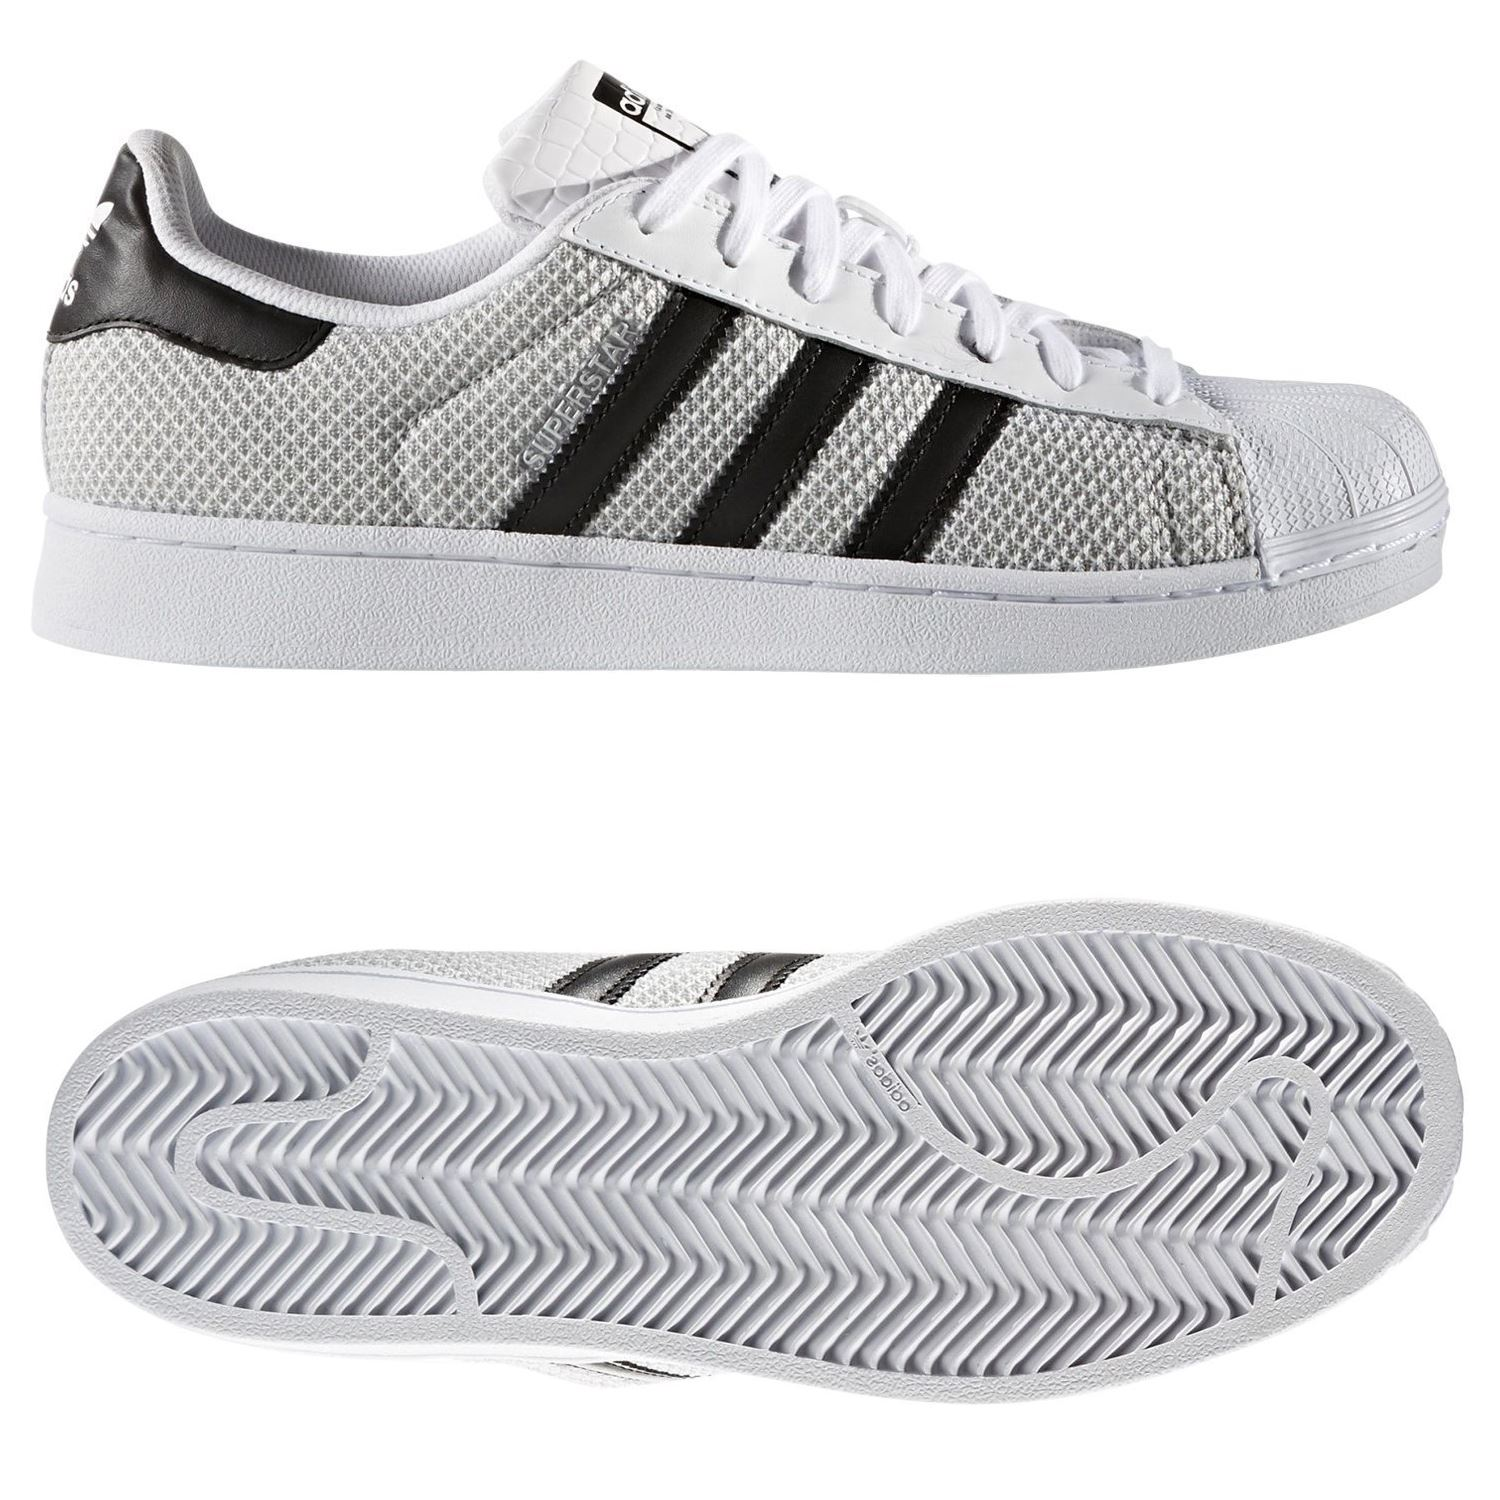 new concept 3a63c 711a9 Reino Unido SUPERSTAR zapatillas Blanco 4 5 9 tejido SHELL TOP zapato Adidas  ORIGINALS hombre